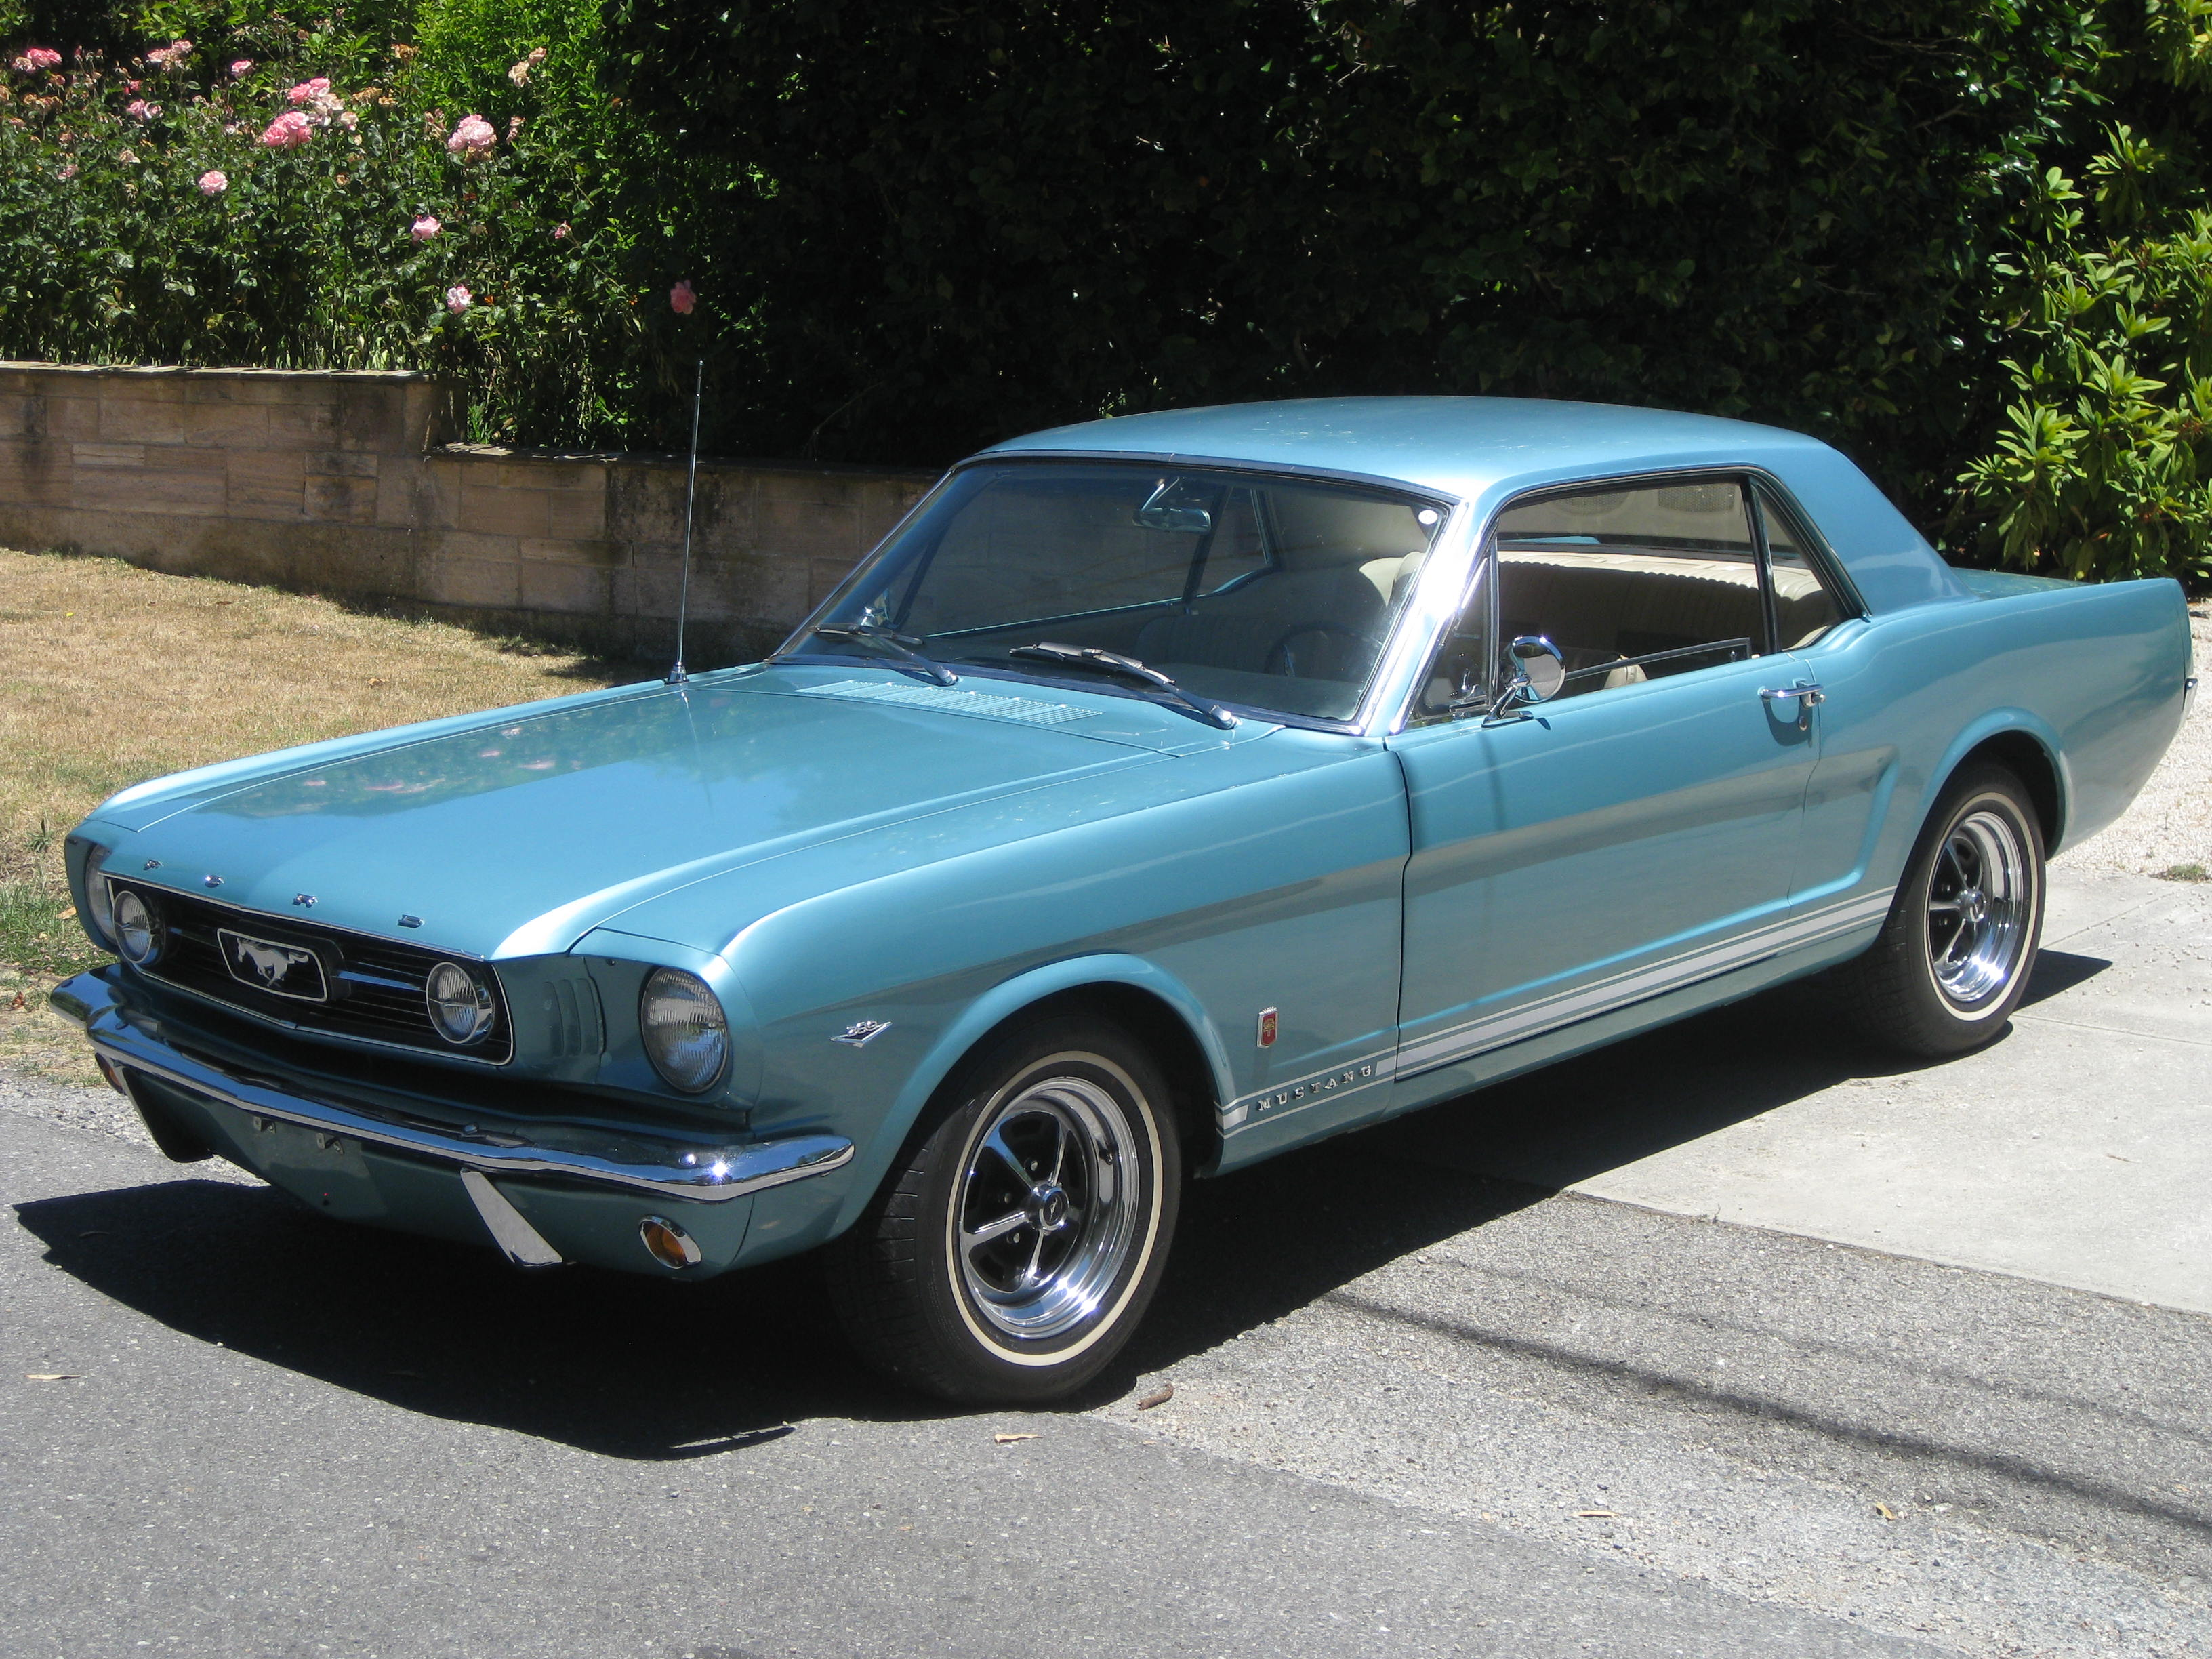 1966 Ford Mustang GT V8 – Collectable Classic Cars